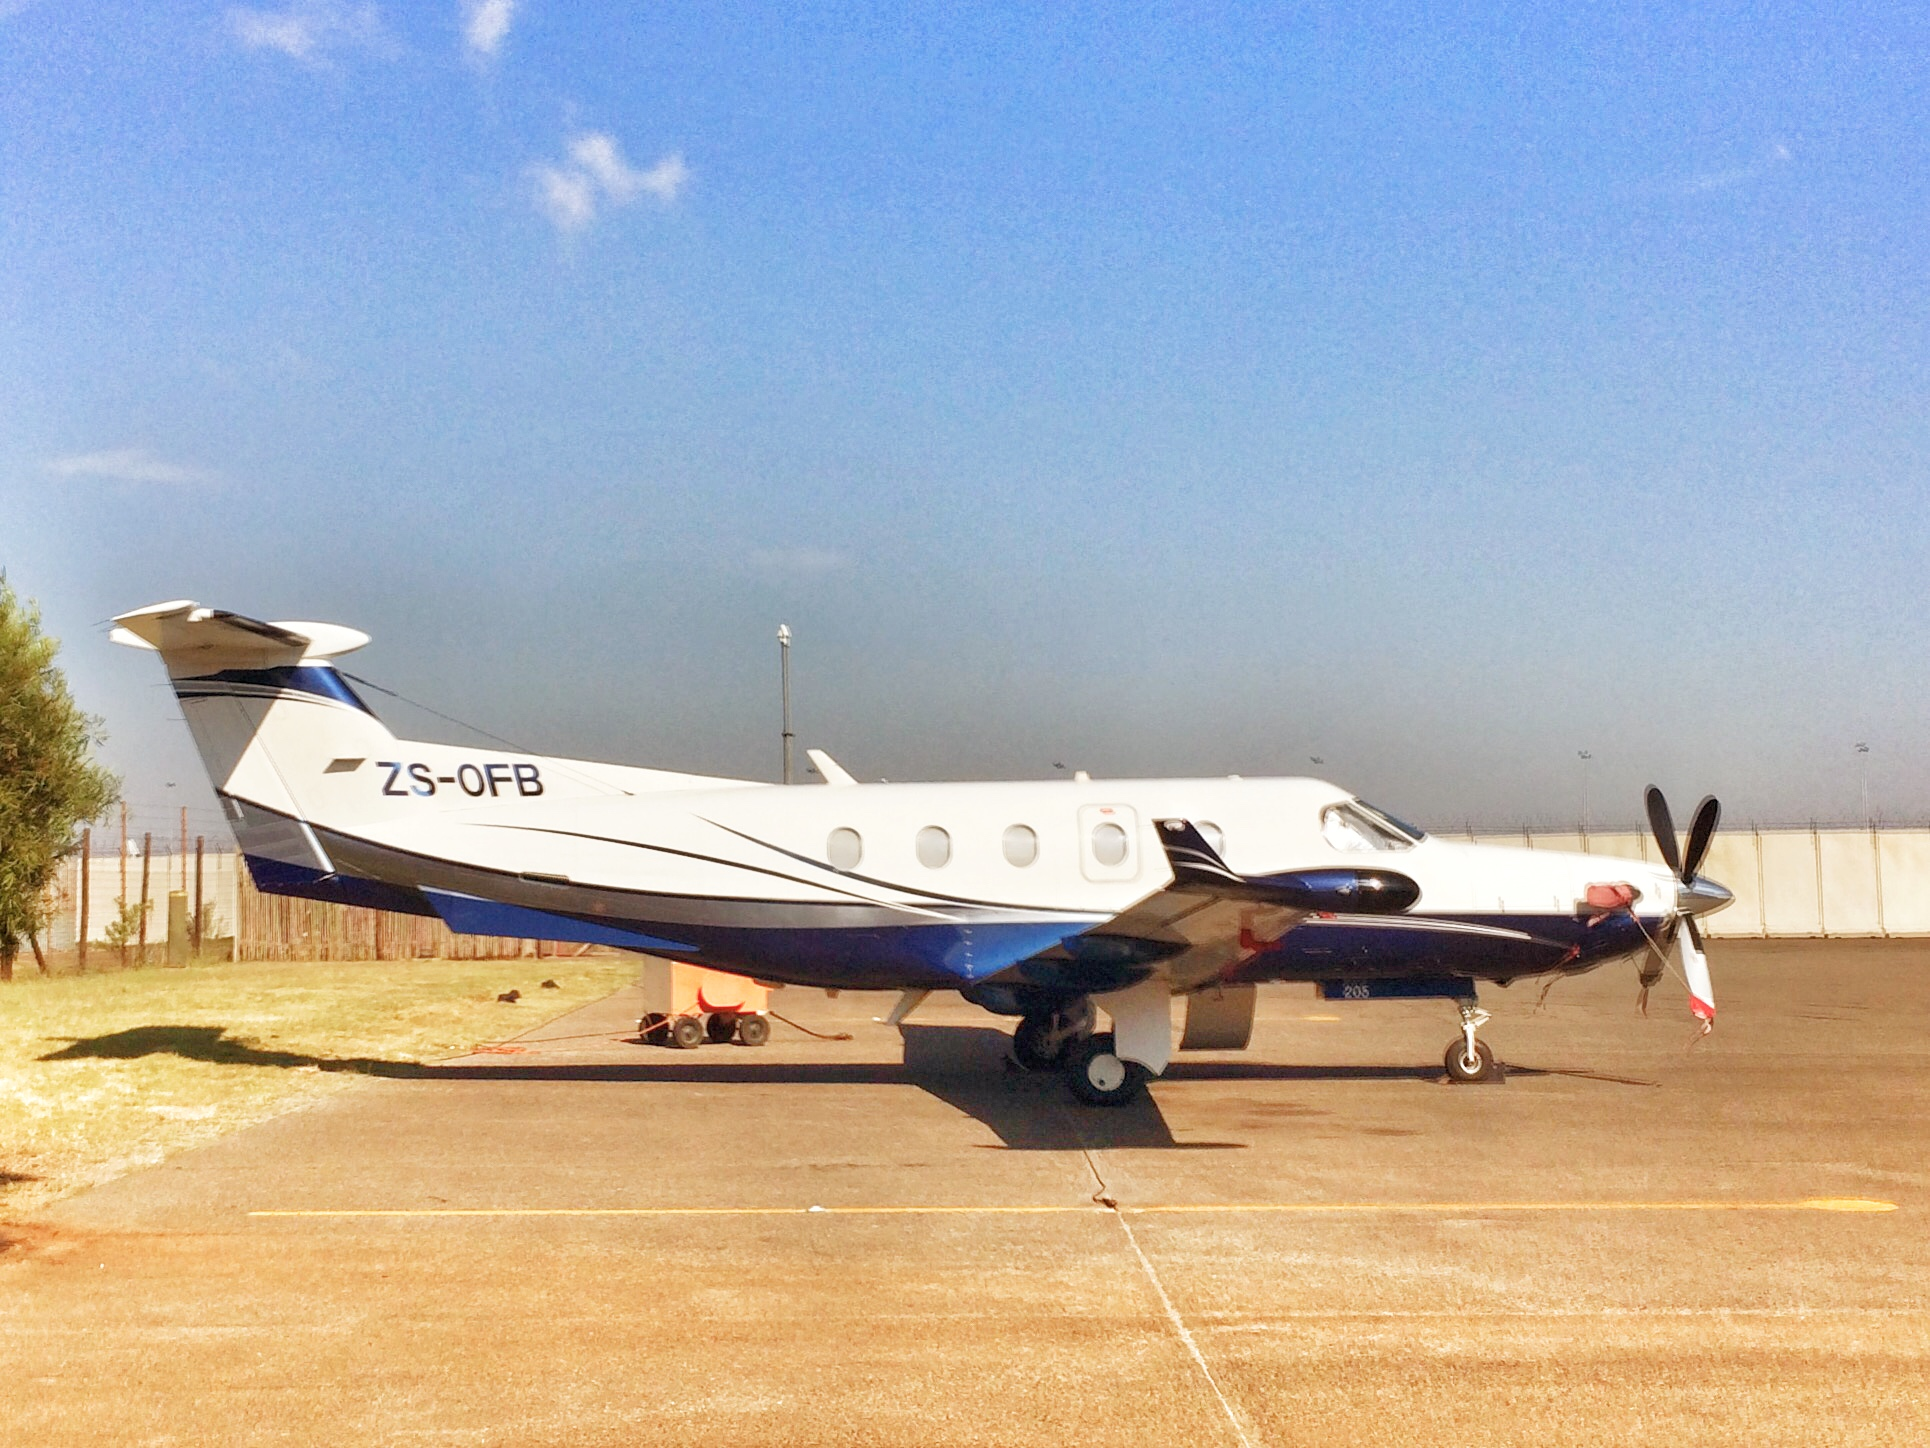 Our chartered aircraft from Johannesburg to Thornybush.